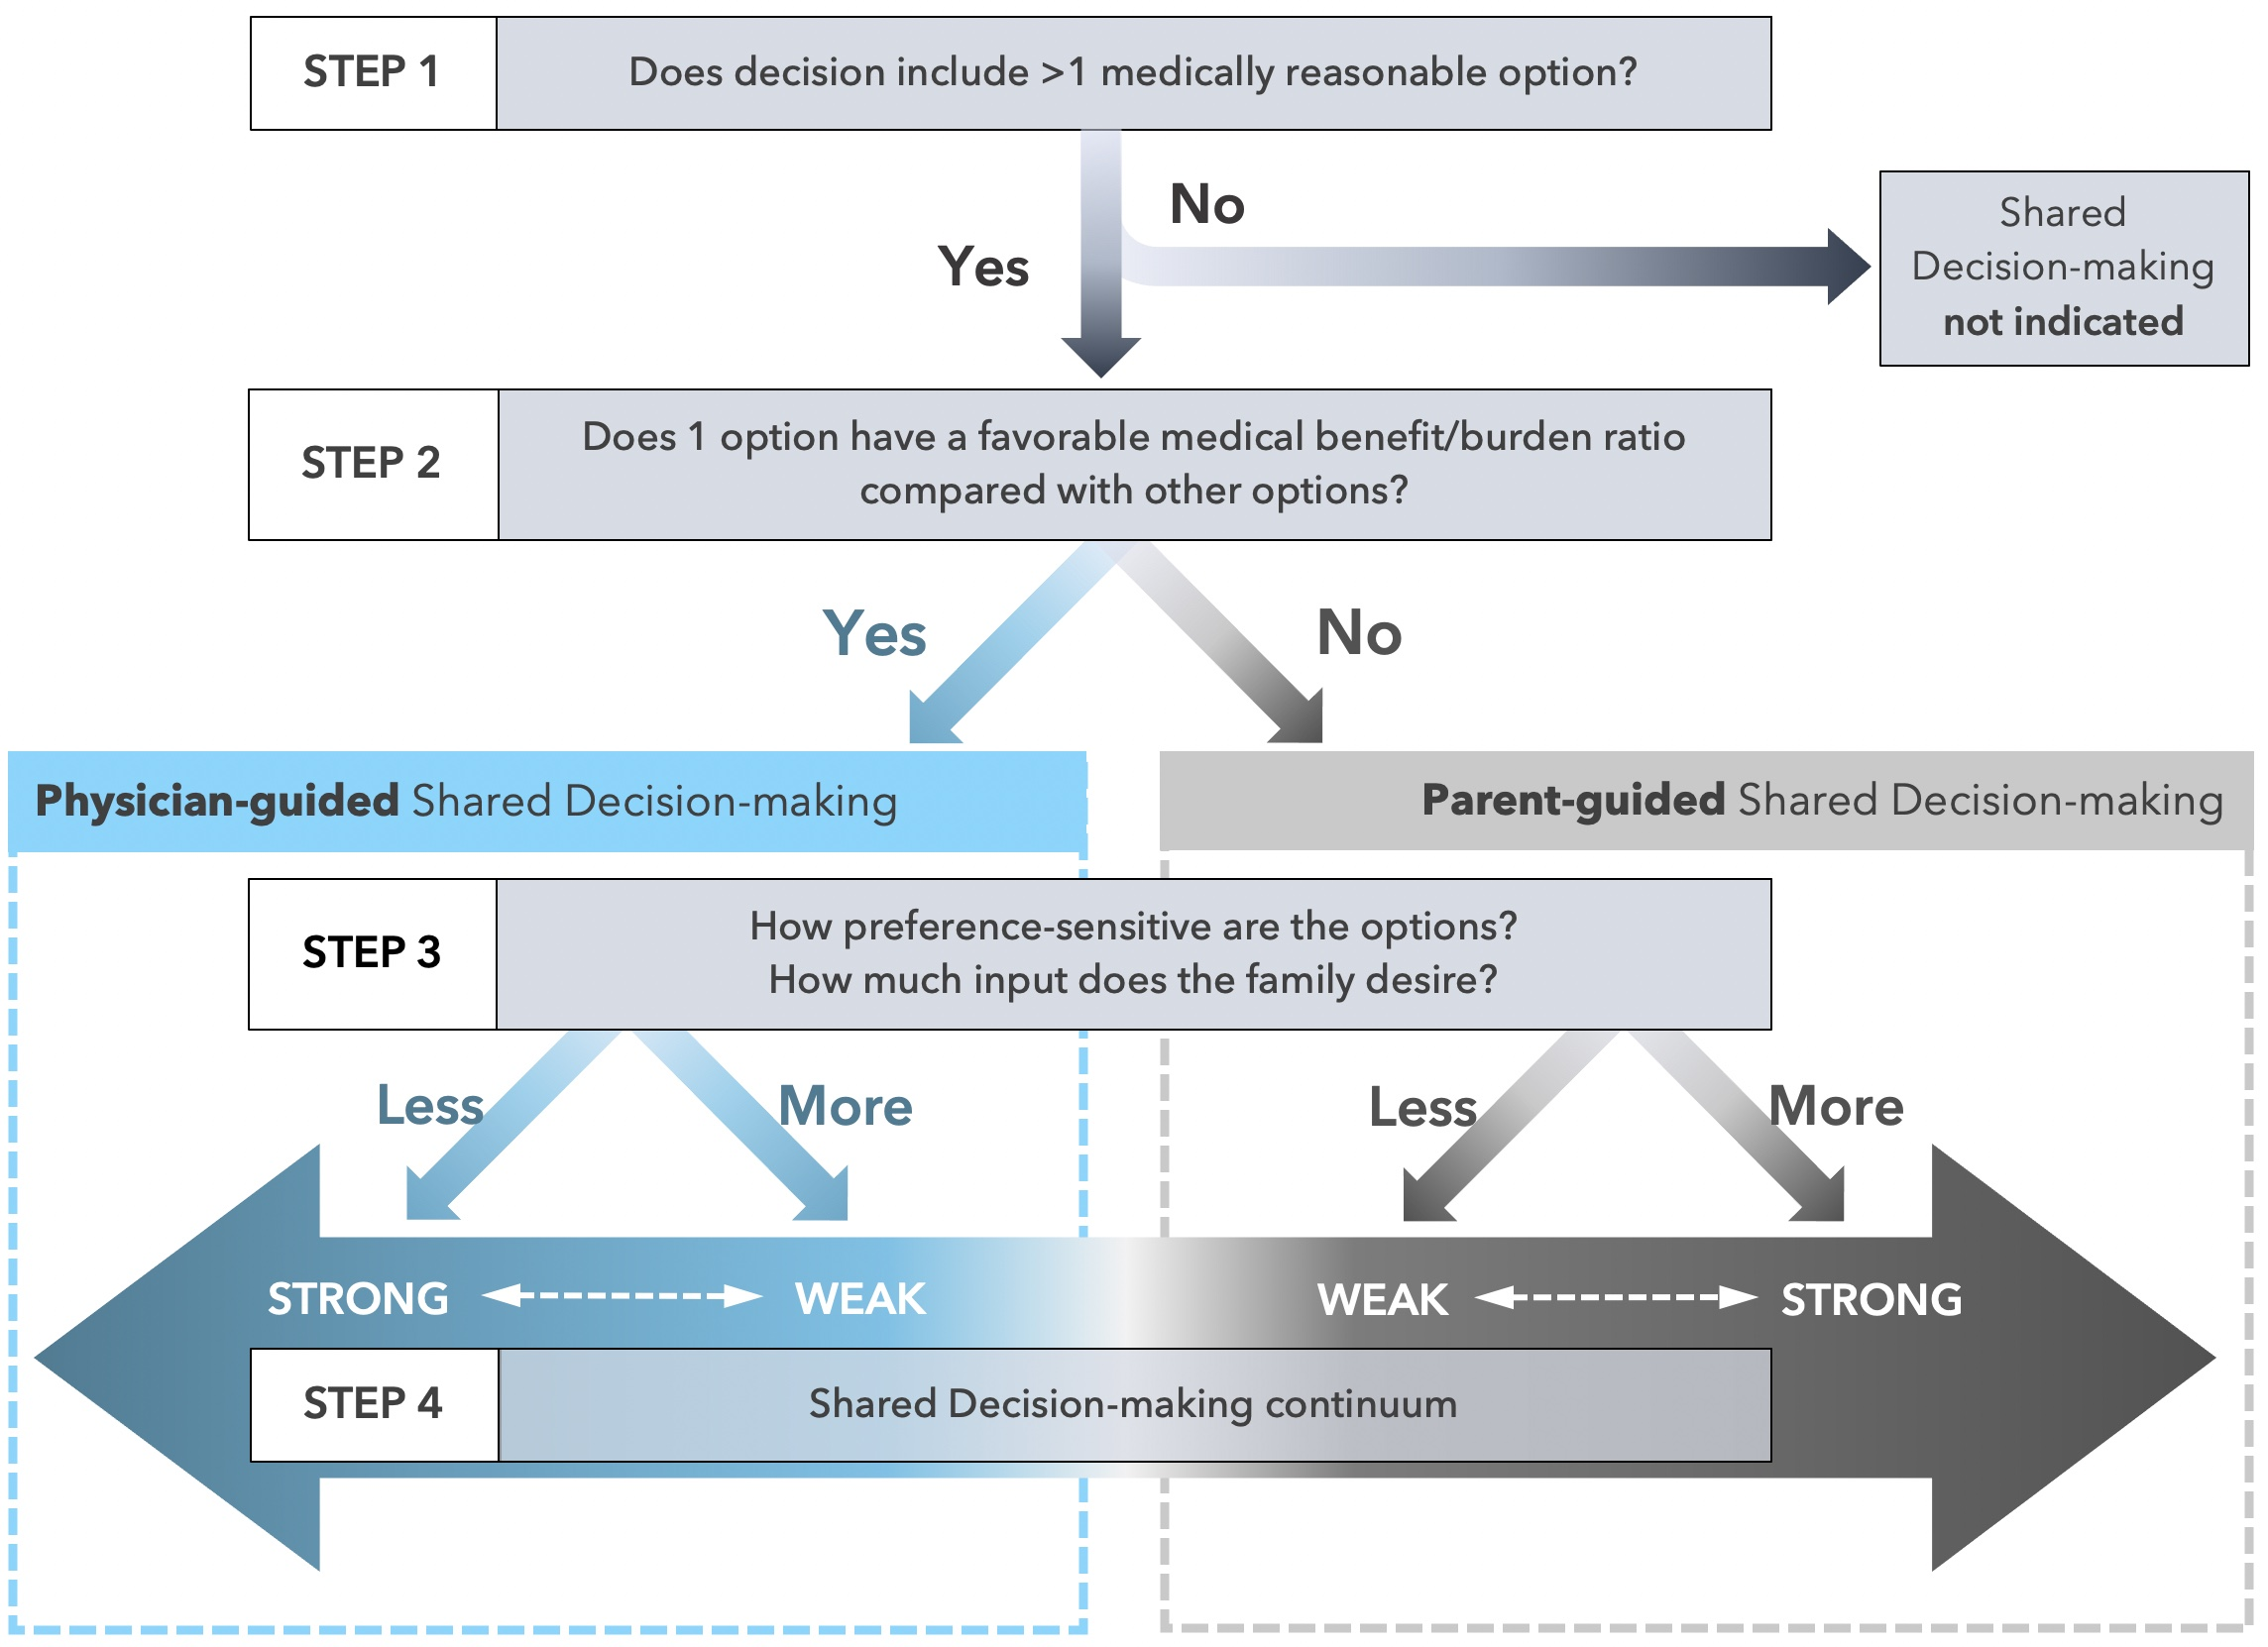 Opel DJ. A 4-step framework for shared decision-making in pediatrics